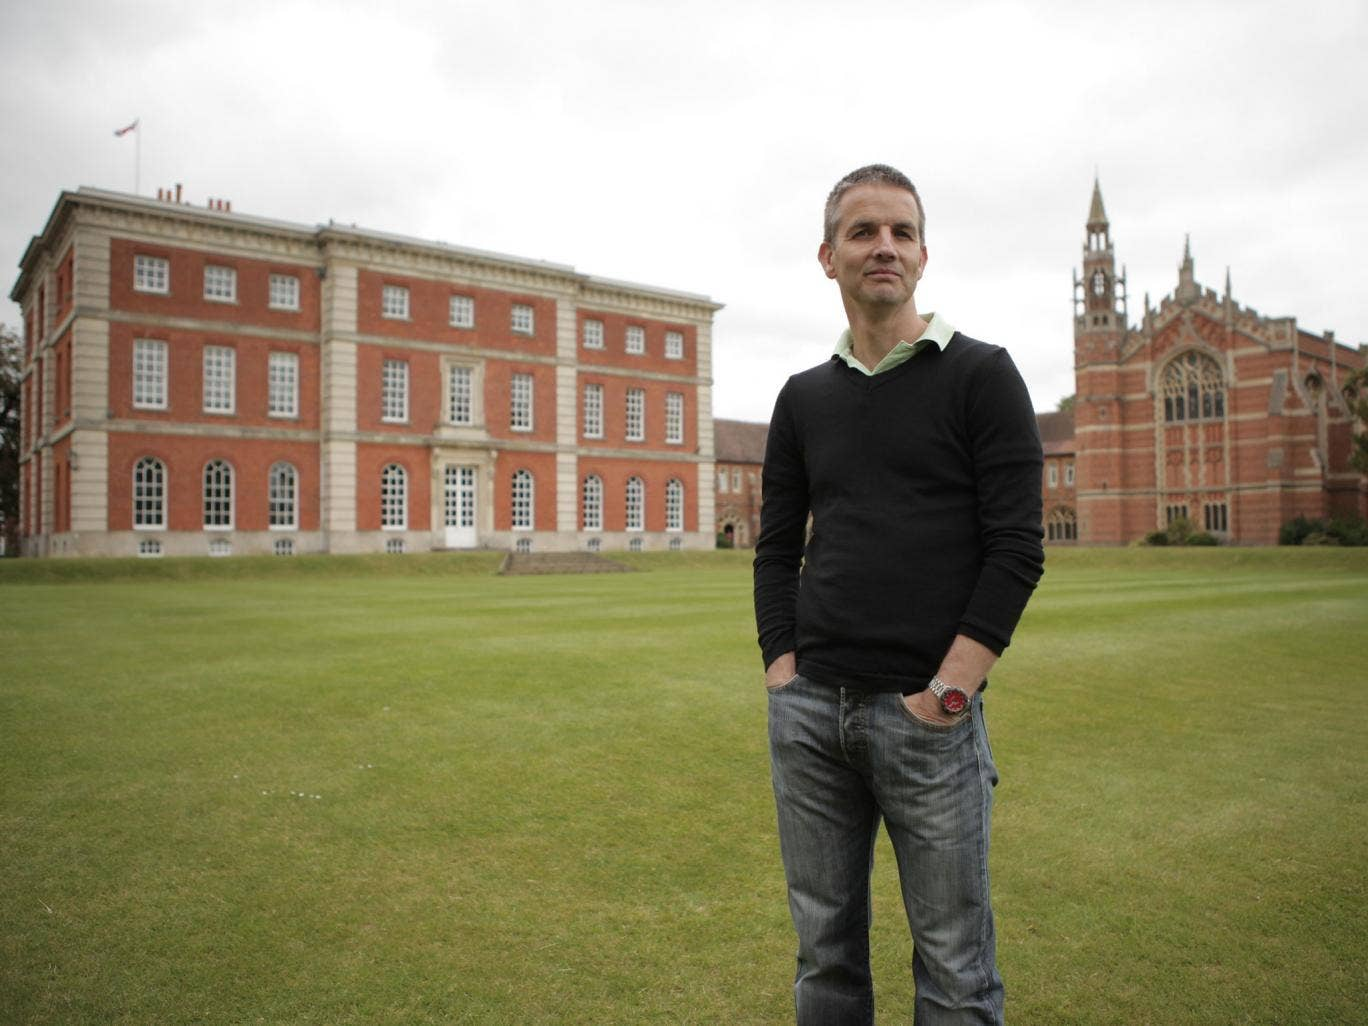 Former Radley college scholar Donald Payne stars in A Very English Education